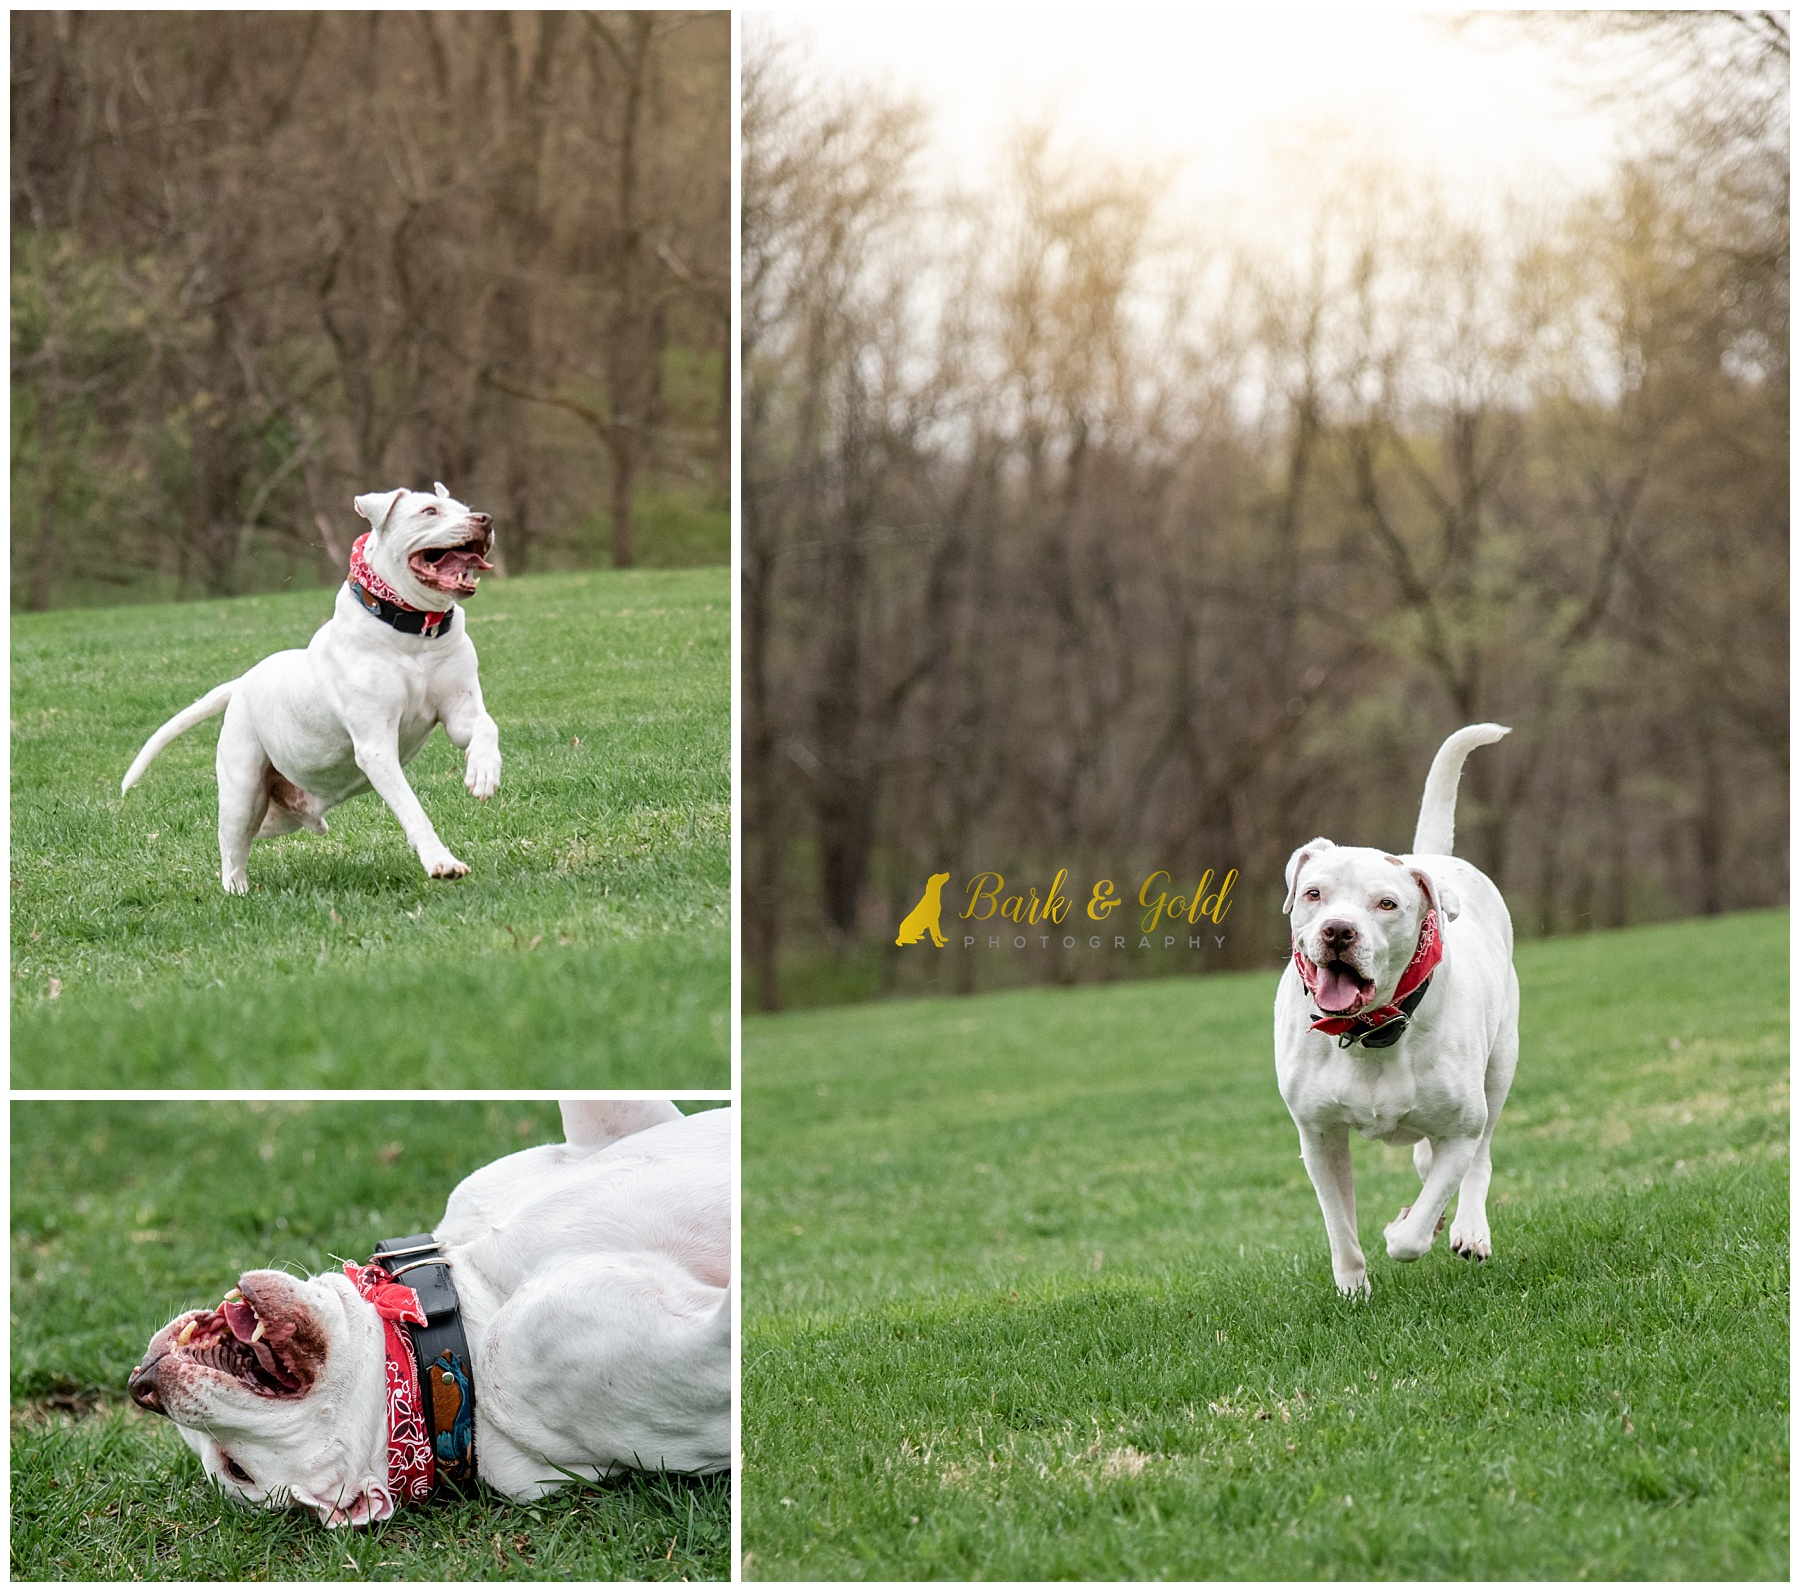 white pit bull running and playing in a field at South Park near Pittsburgh